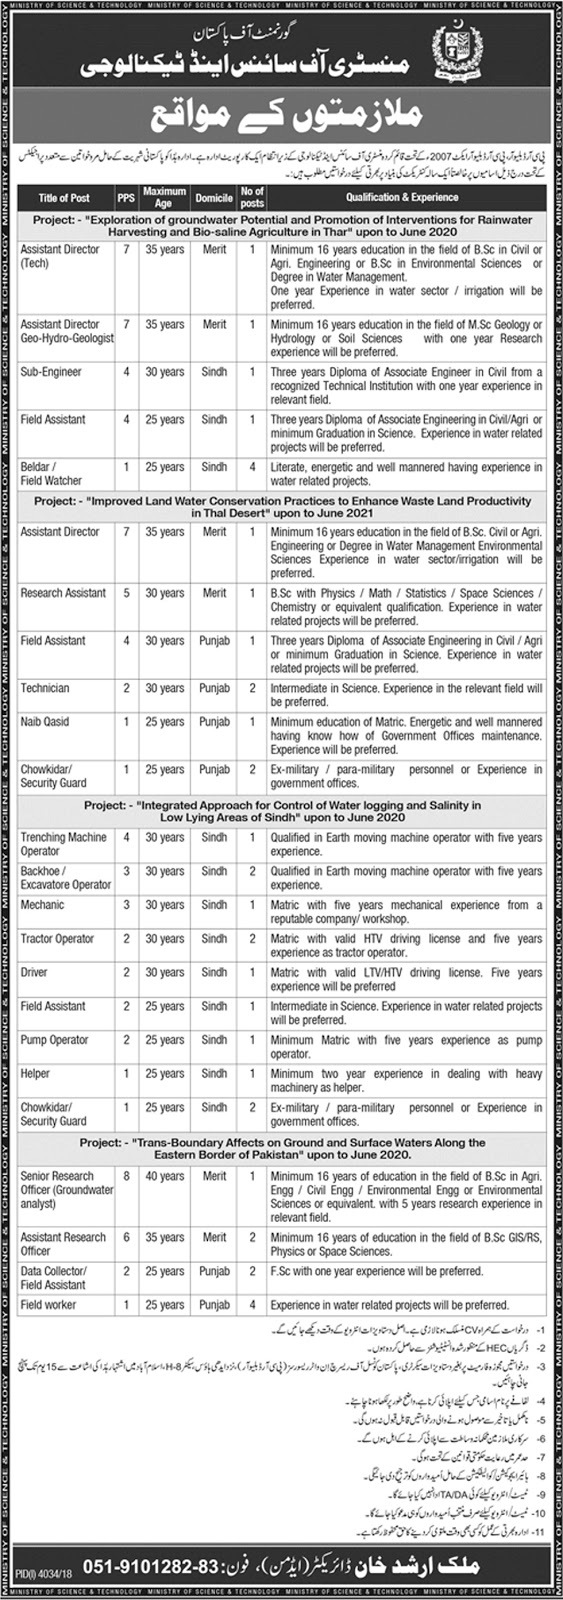 Ministry Of Science And Technology Job 2019, Ministry Of Science And Technology Jobs Govt Of Pakistan 2019 March